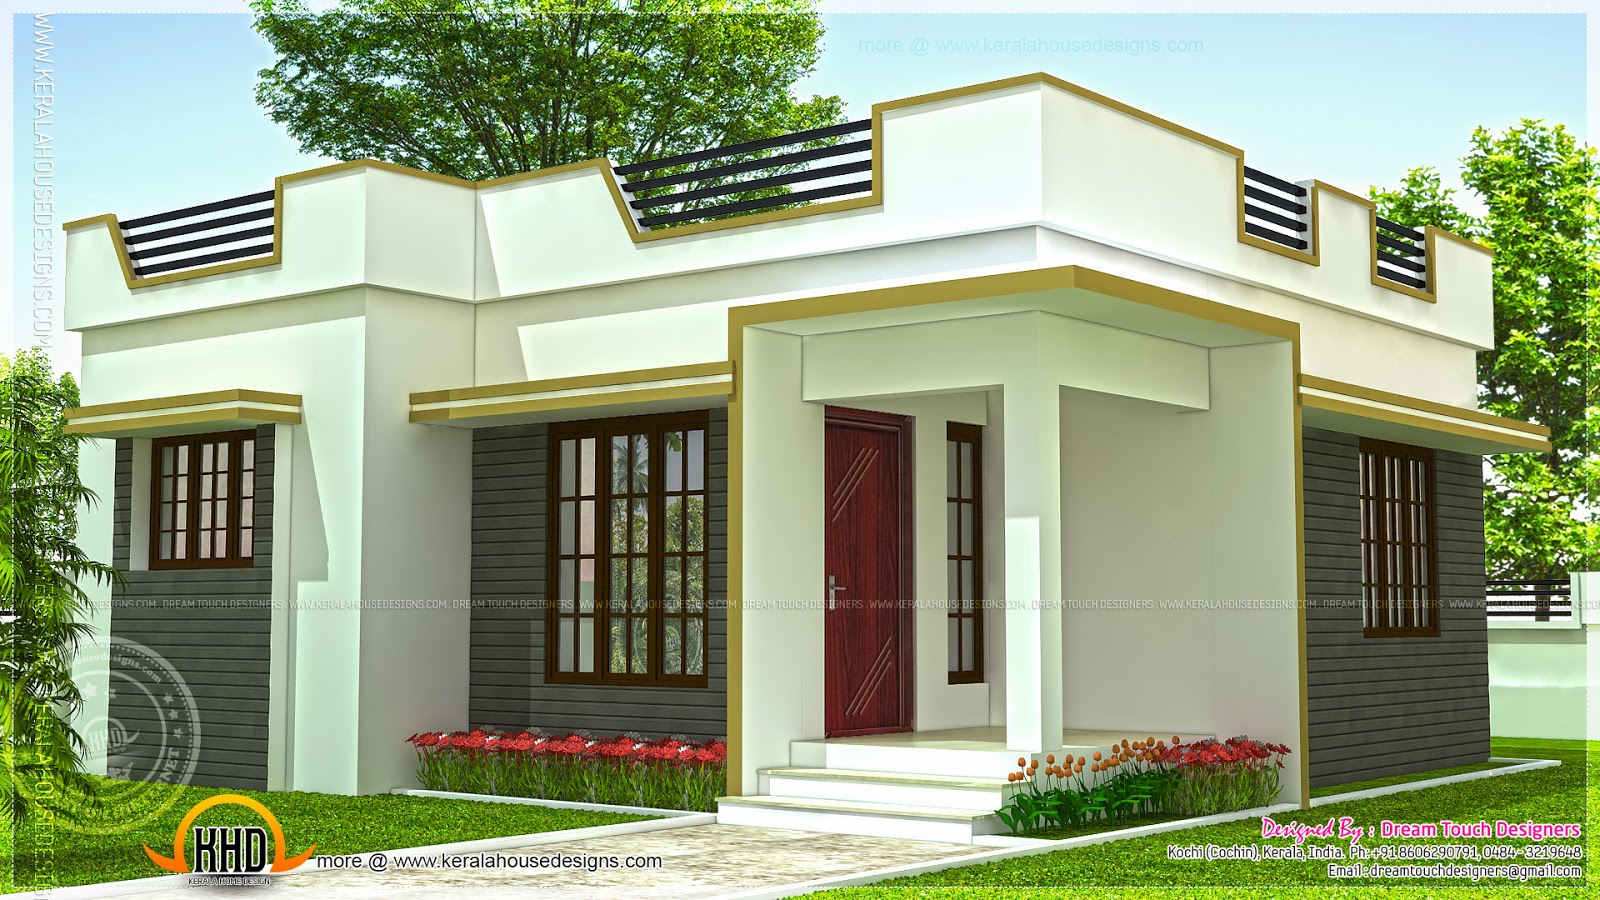 Kerala small house plans joy studio design gallery for Small house design in kerala